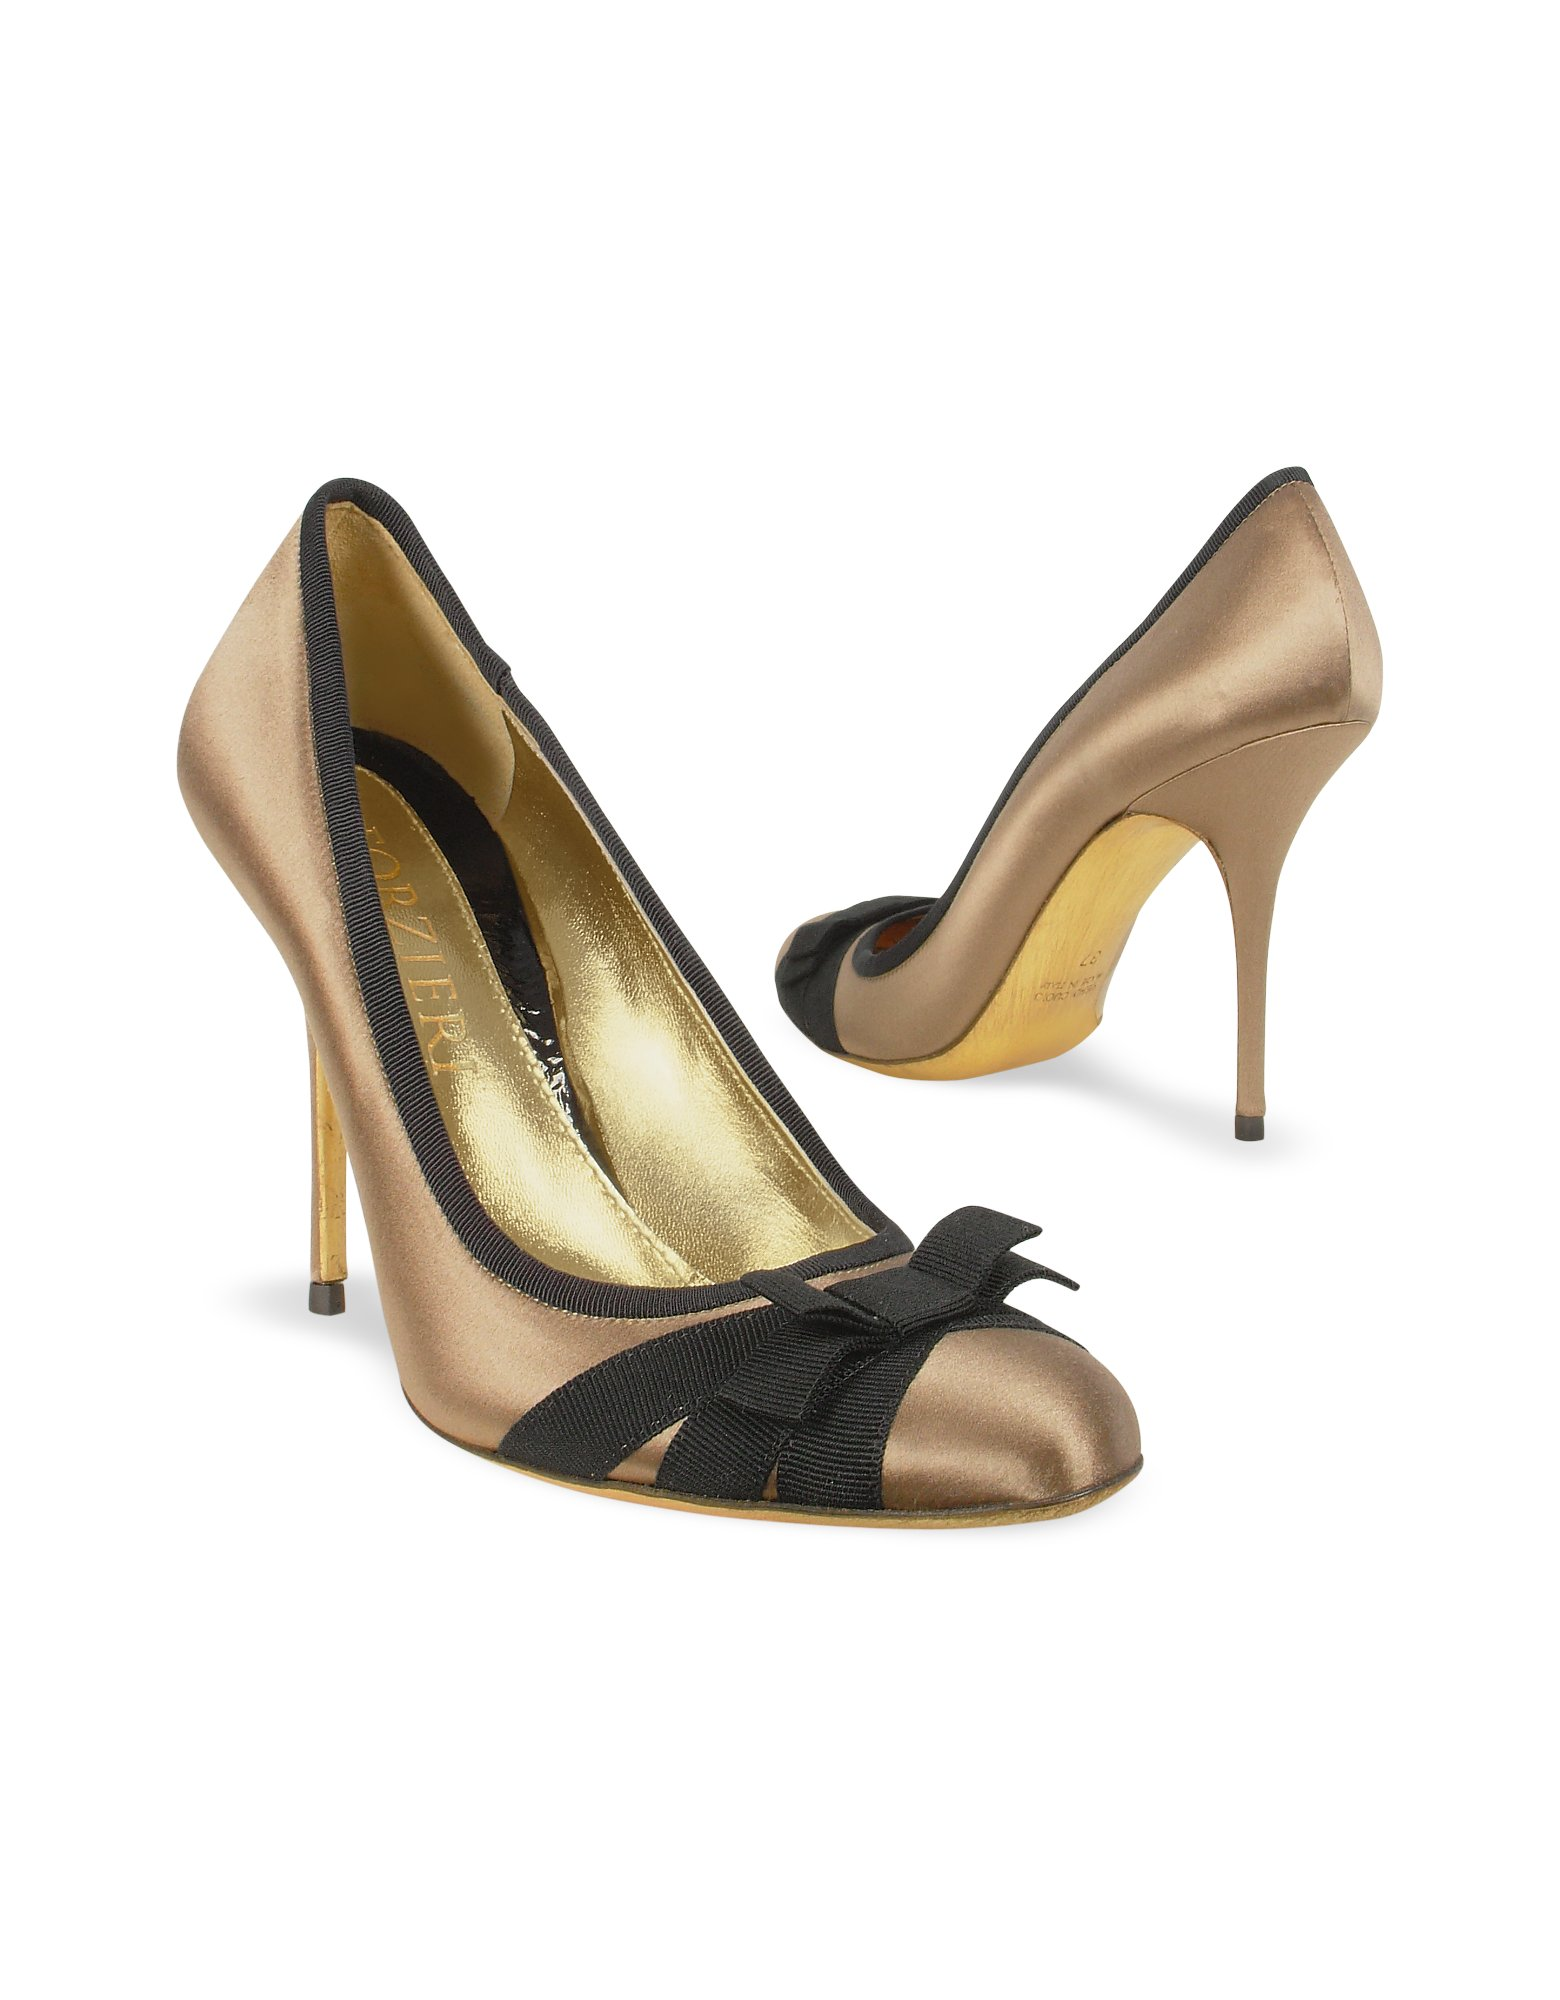 forzieri black bow taupe satin and leather pump shoes in